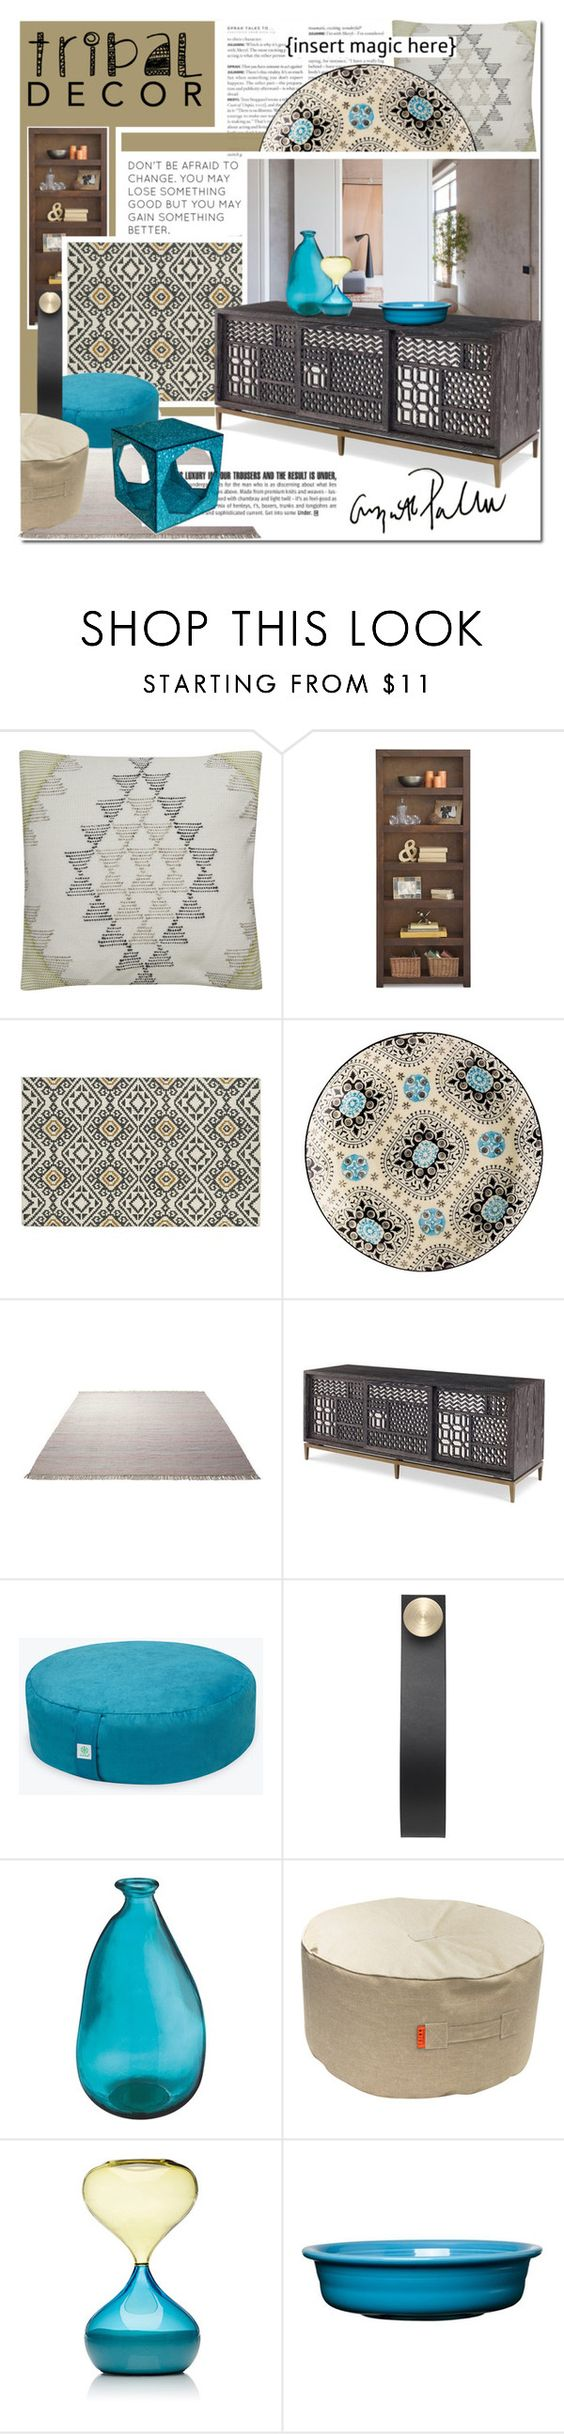 """Tribal magic"" by undici ❤ liked on Polyvore featuring interior, interiors, interior design, home, home decor, interior decorating, Kaleen, ESPRIT, By Lassen and Venini"